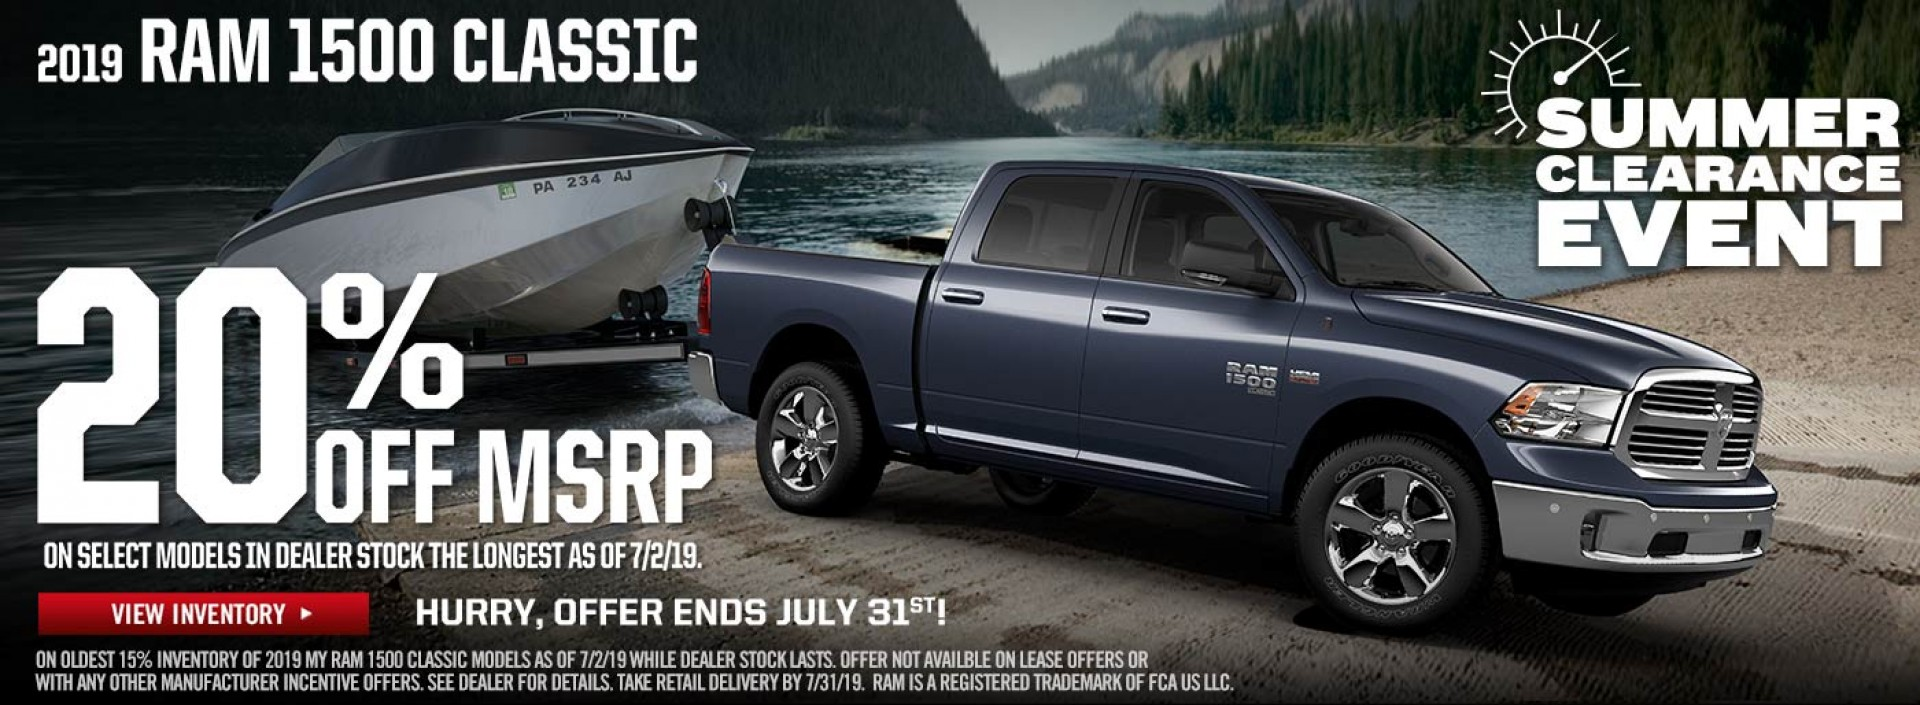 July-19Ram1500Classic-20%.jpg-REV